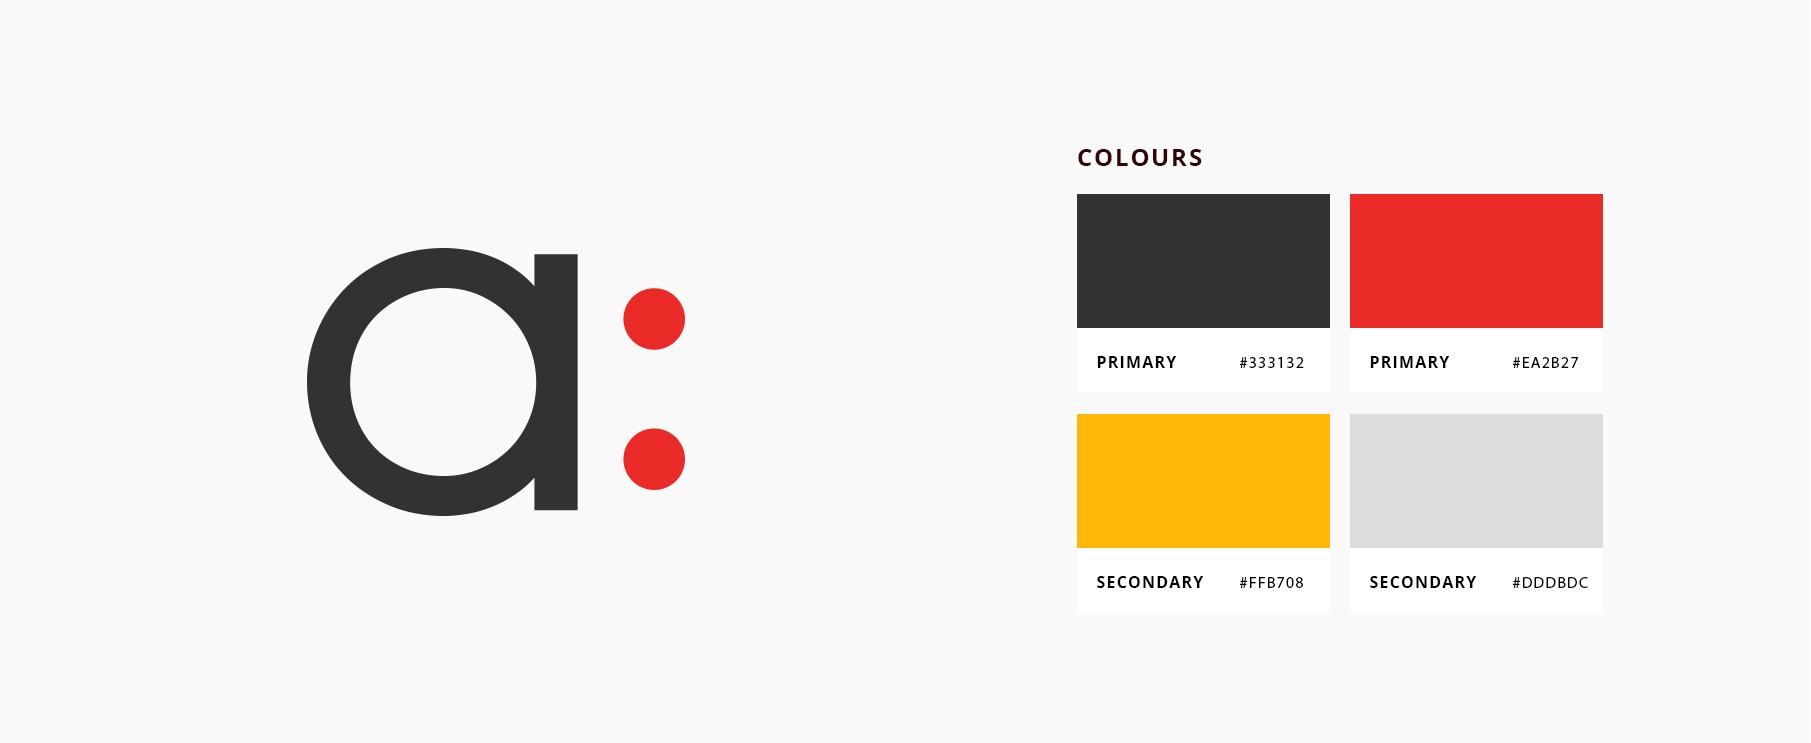 An image of Ameo's colour palette